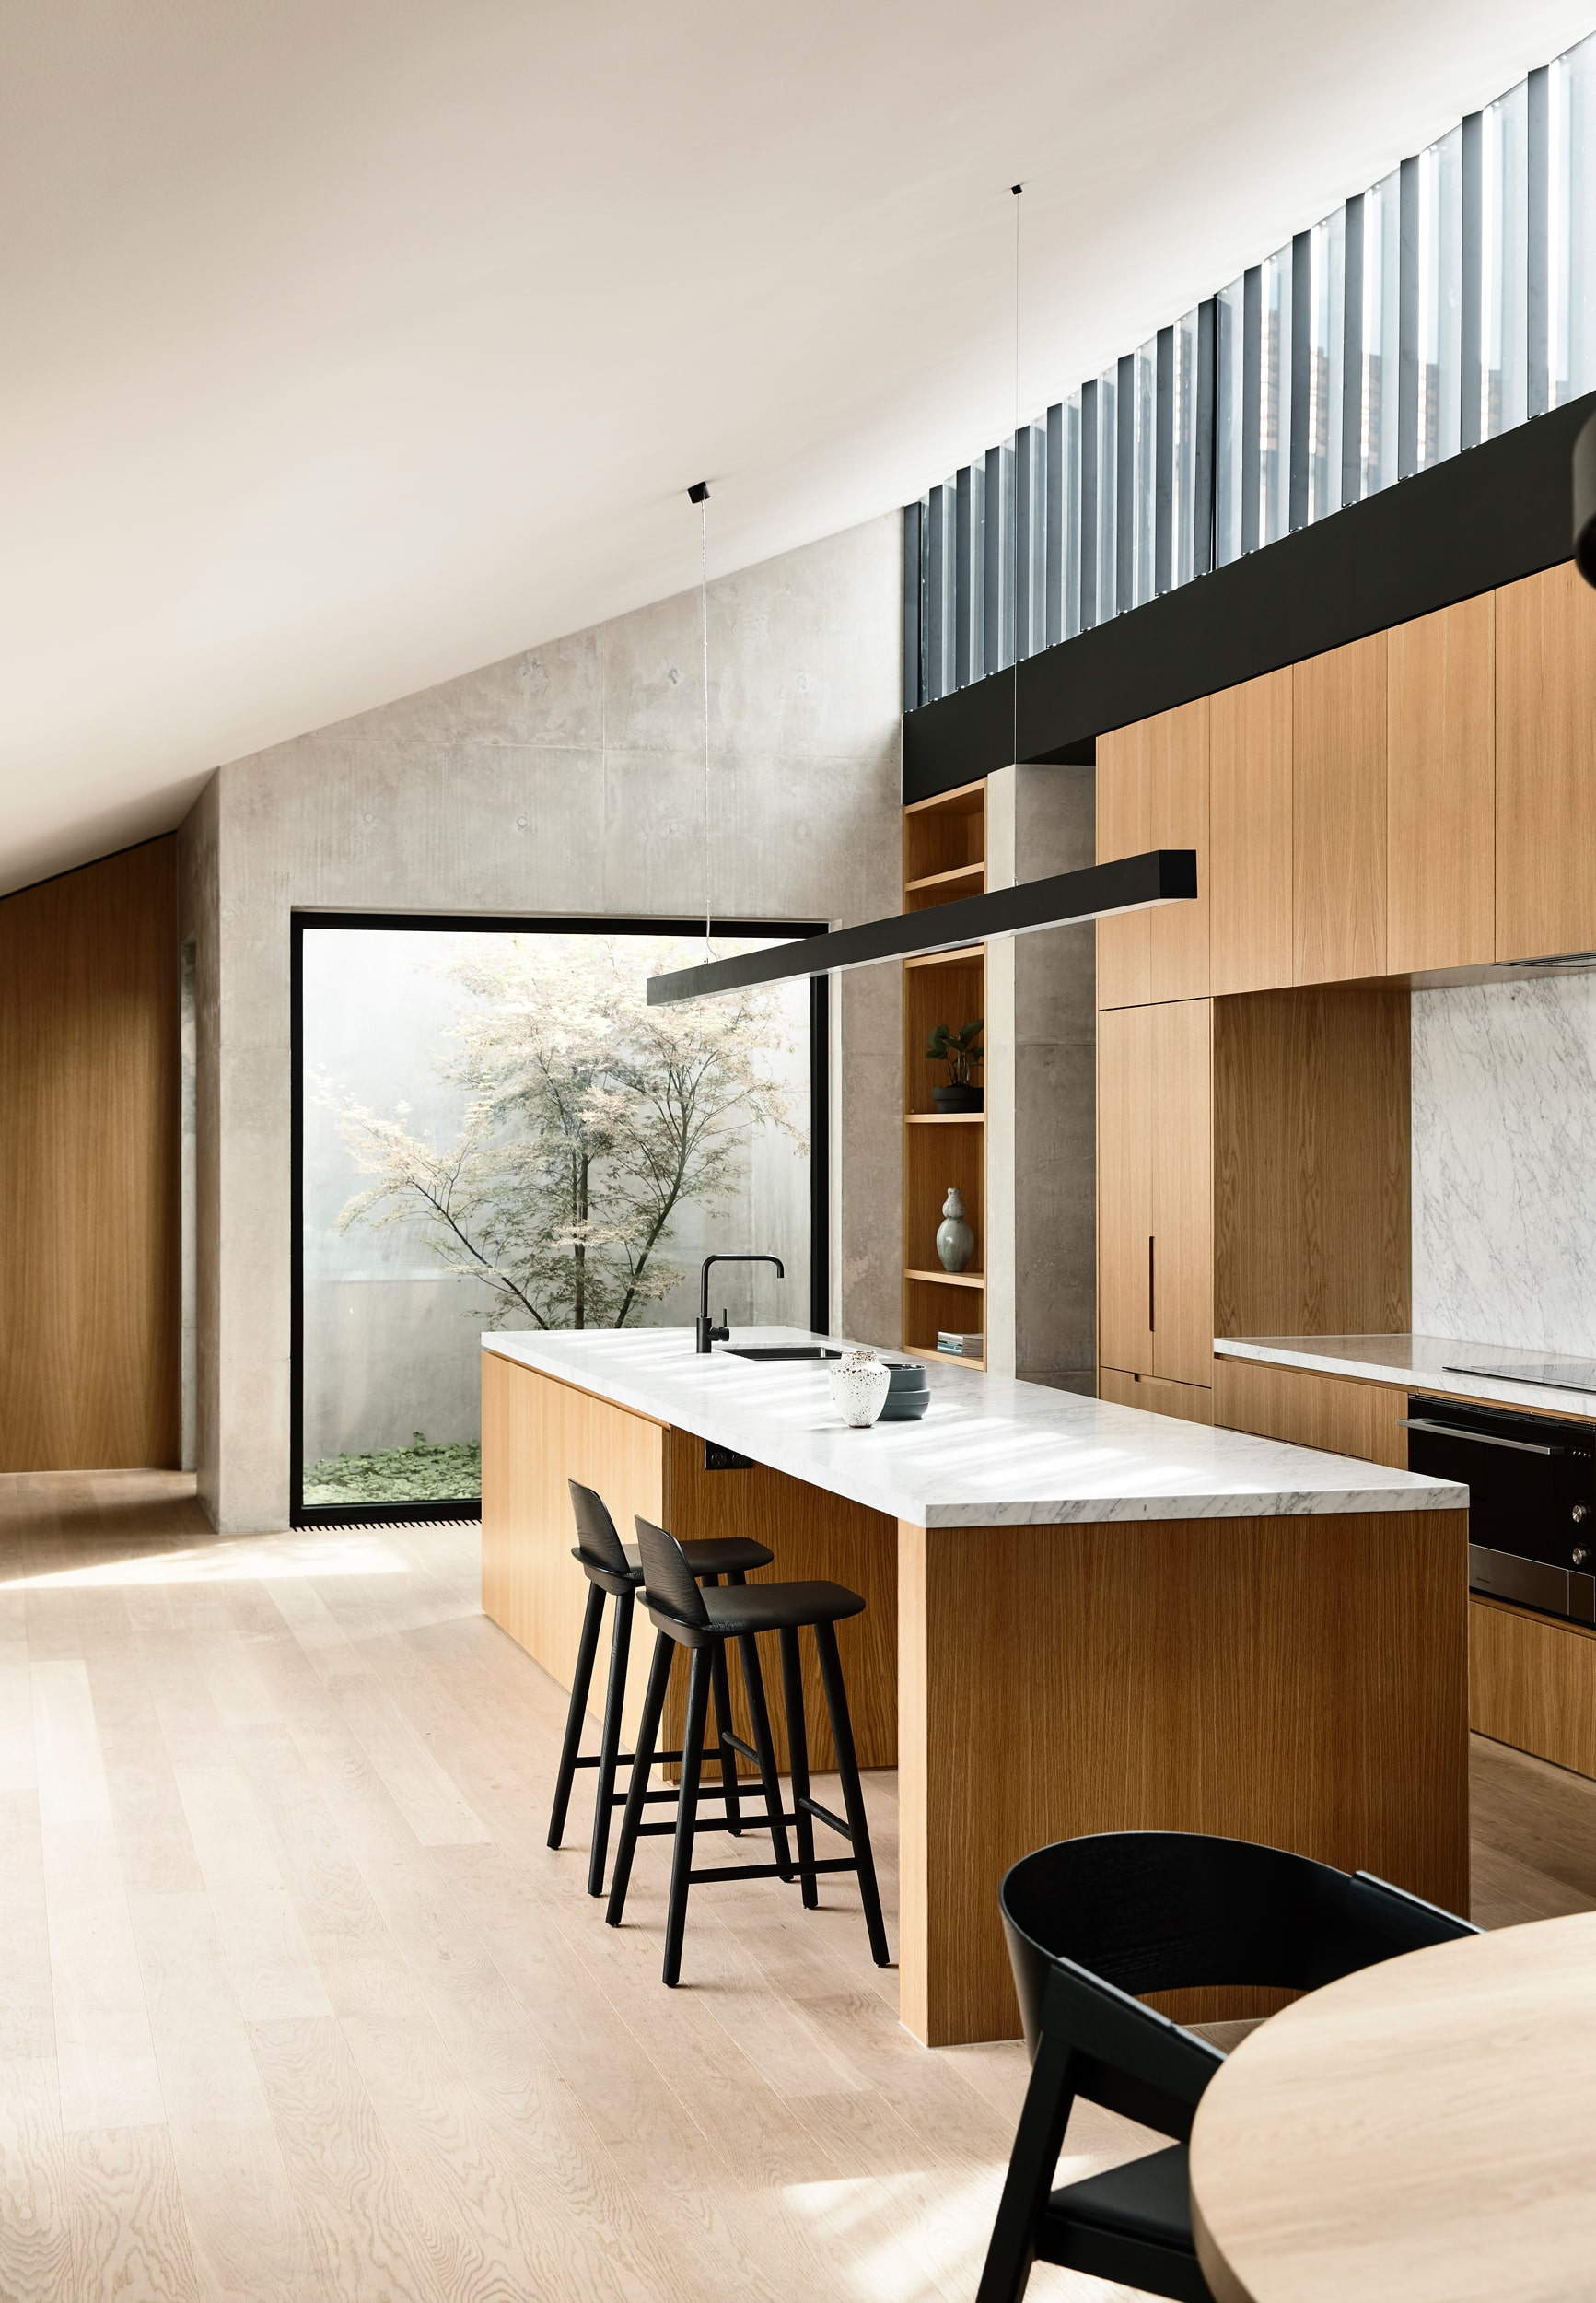 Prahran House By Rob Kennon Architects Local Australian Residential Interior Design And Architects Prahran, Melbourne Image 13